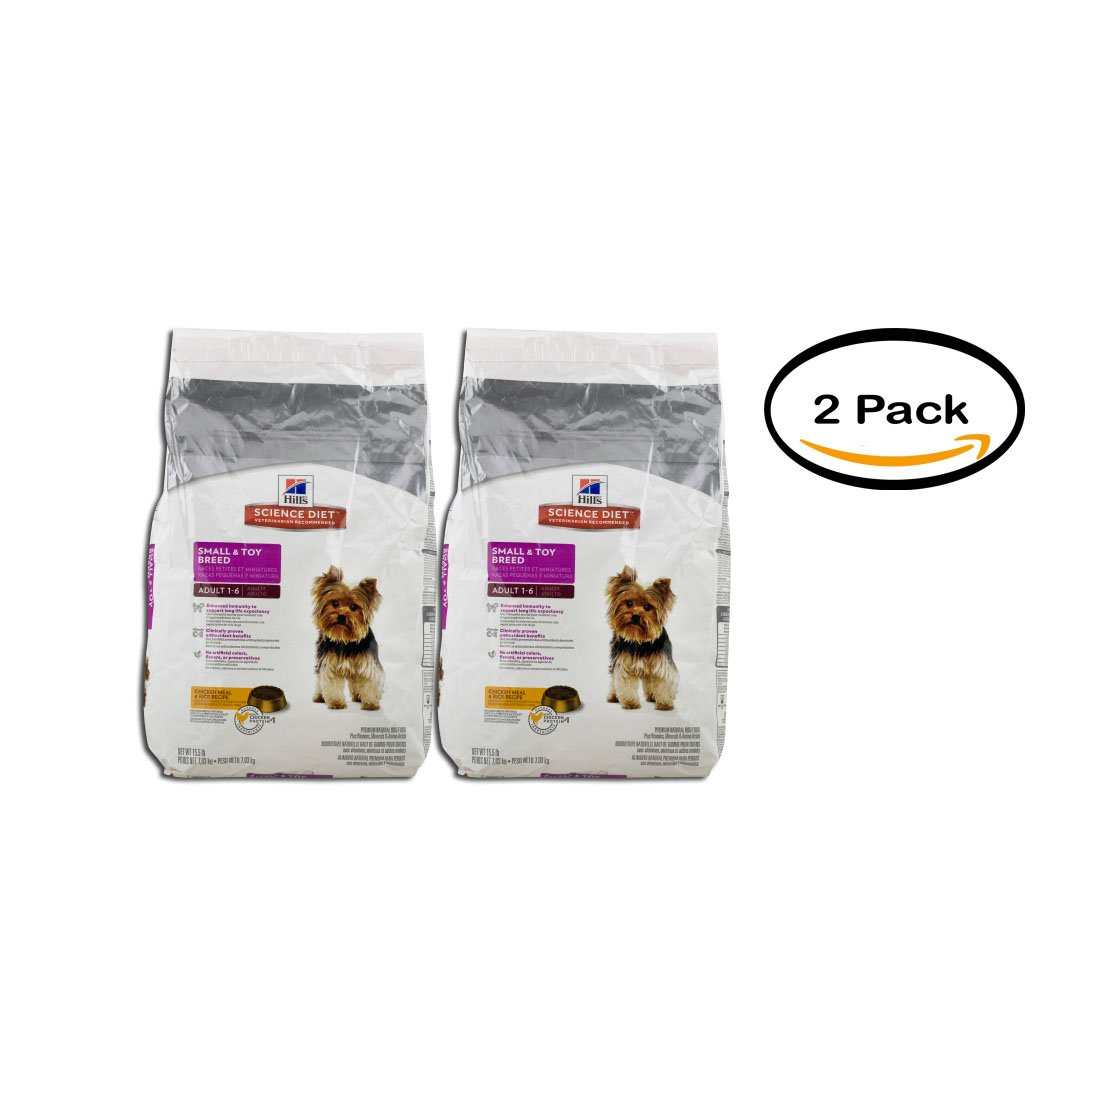 PACK OF 2 - Science Diet Premium Dog Food Small & Toy Breed Adult 1 - 6 Chicken Meal & Rice Recipe, 15.5 LB